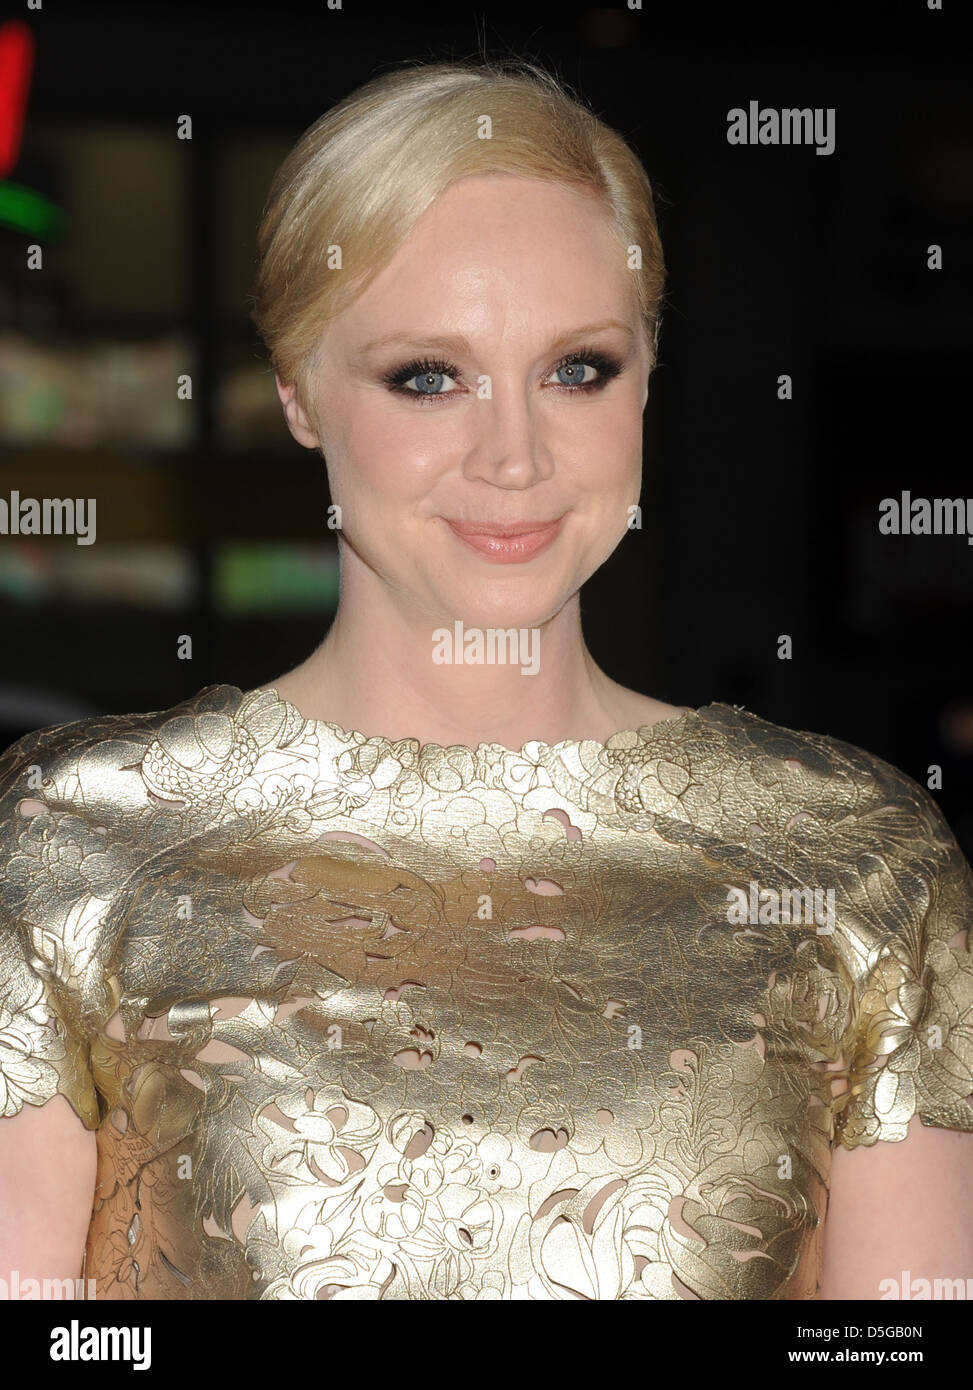 GWENDOLINE CHRISTIE  UK TV and film actress - Stock Image